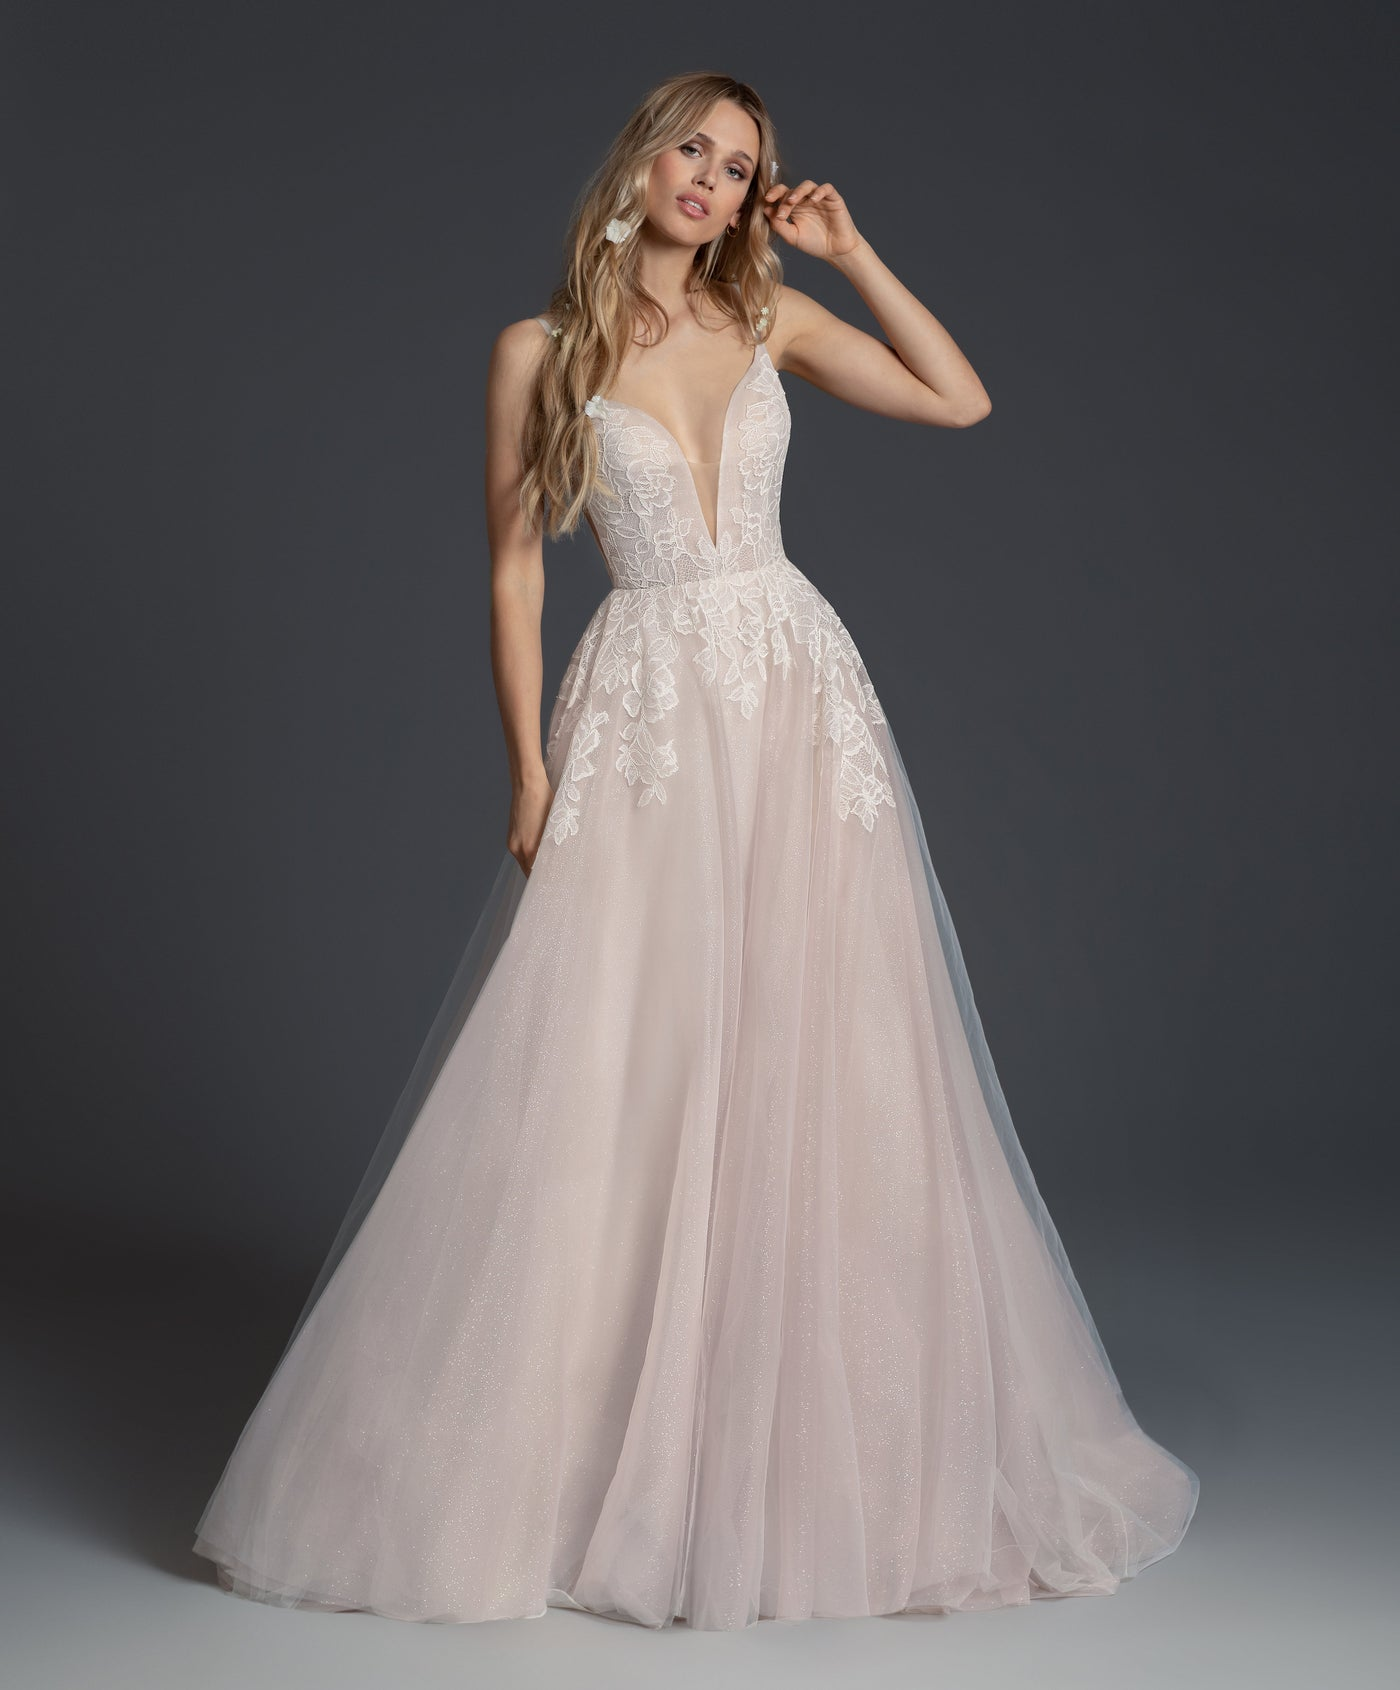 Fiona - New, Gown, Blush by Hayley Paige - Eternal Bridal